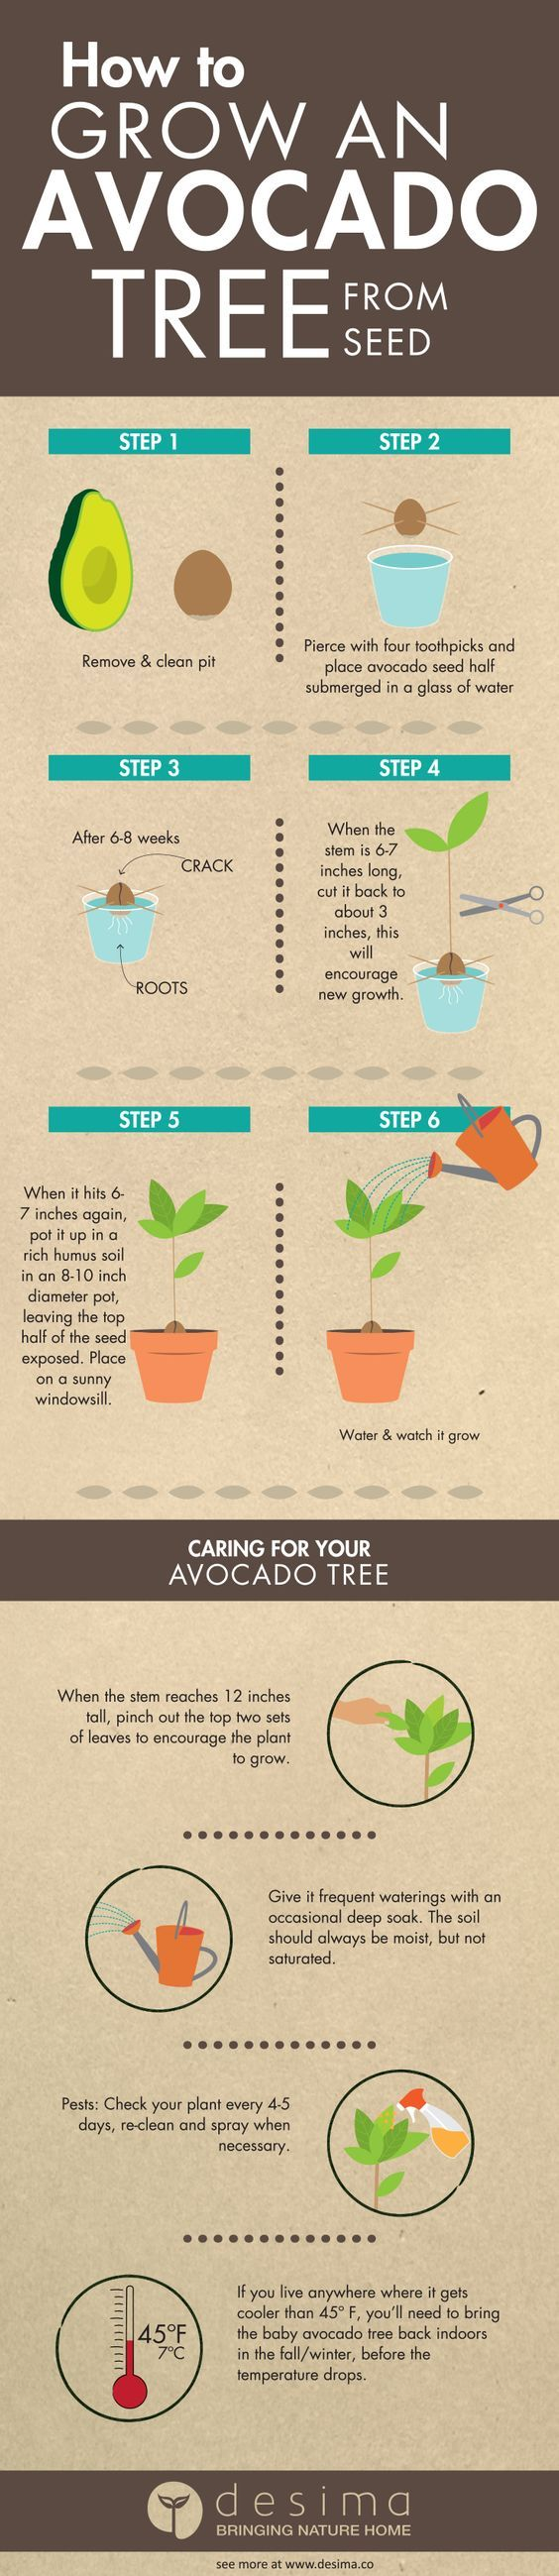 Infographic on how to grow an avocado tree from seed. Something for the #weekend #EasterWeekend